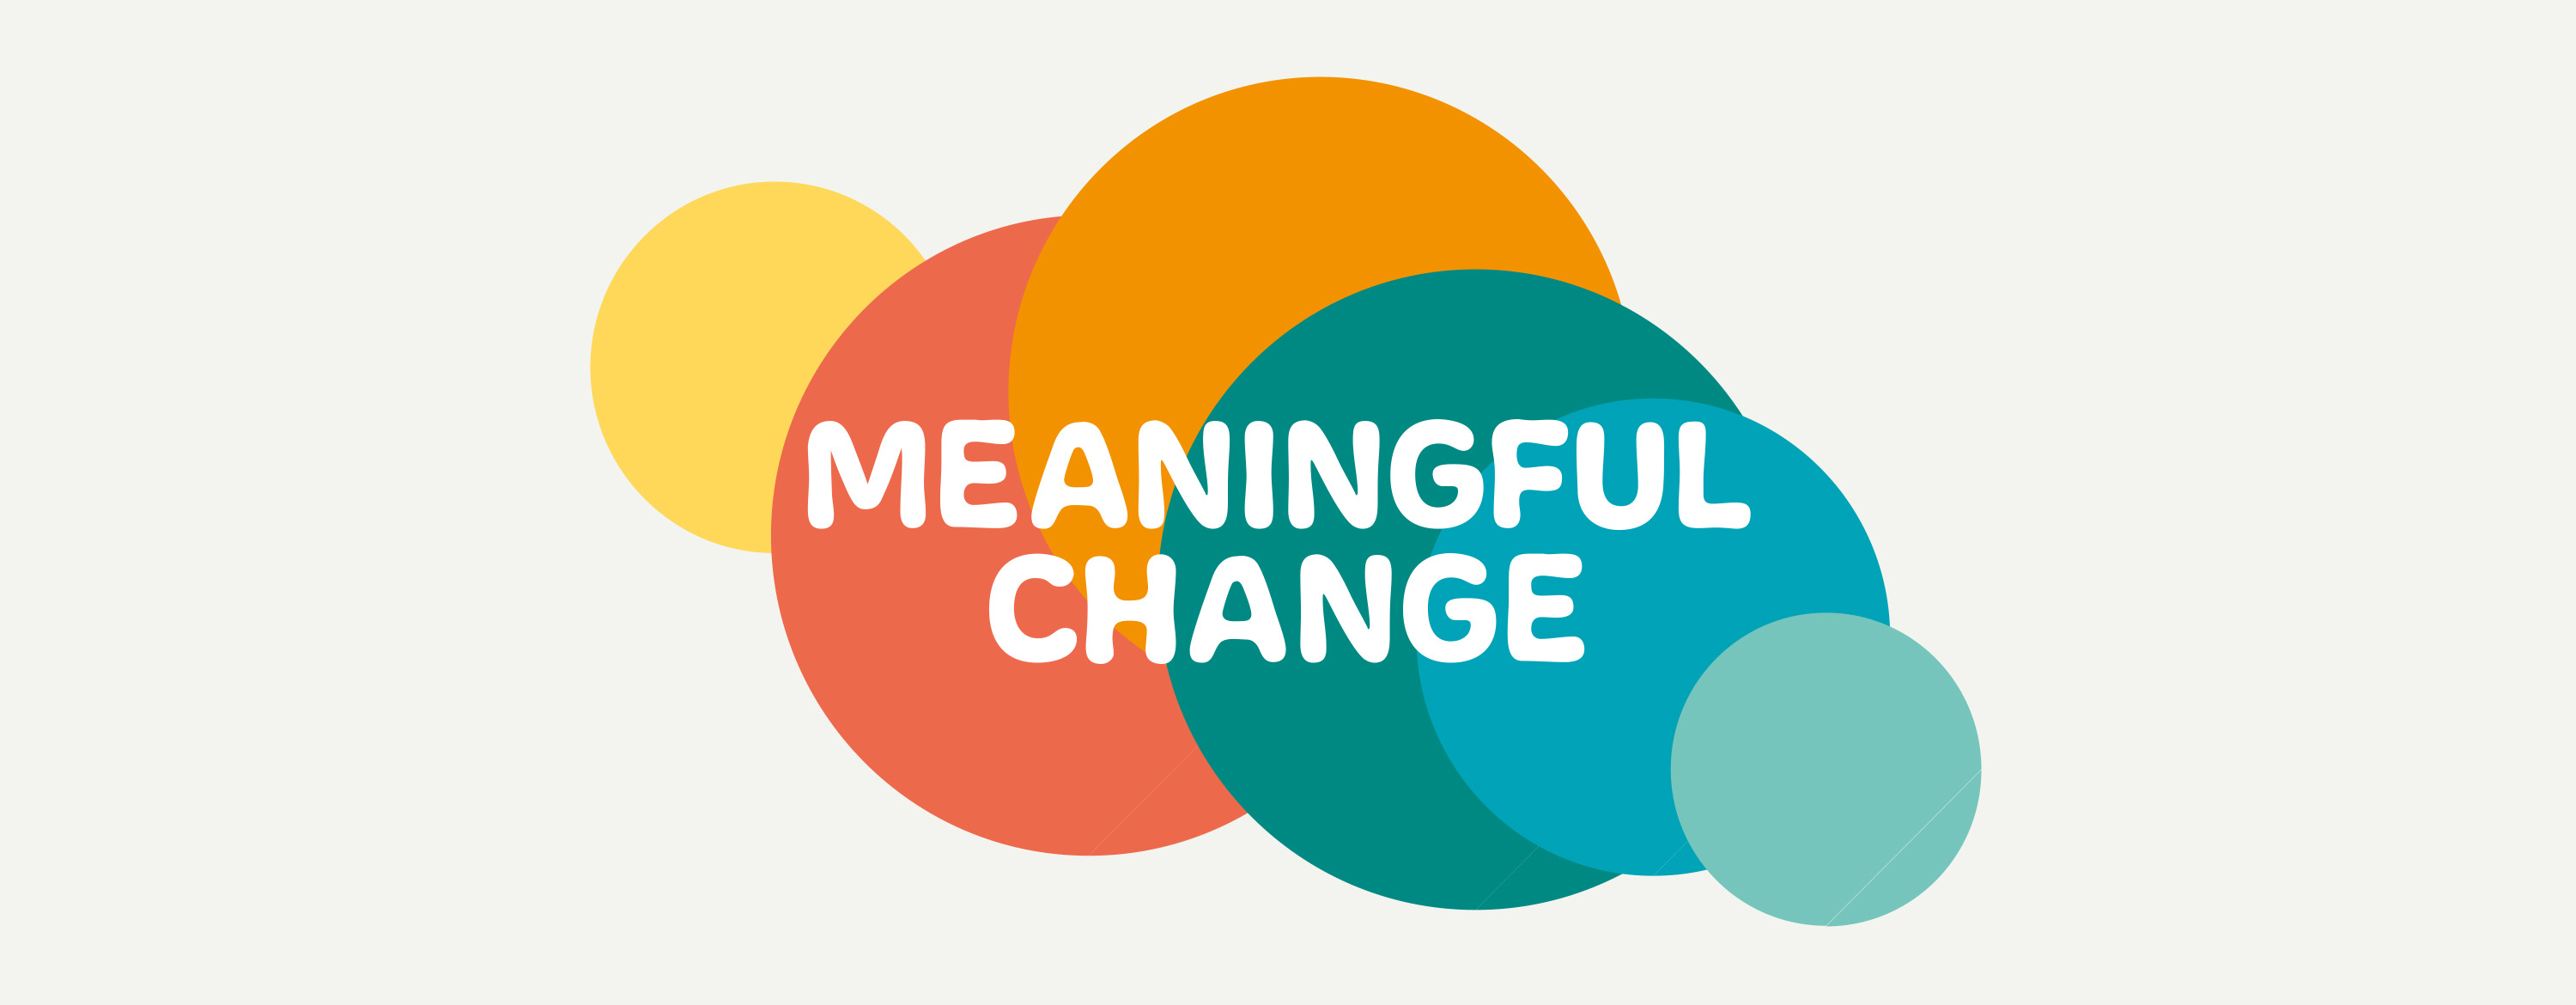 Meaningful Change